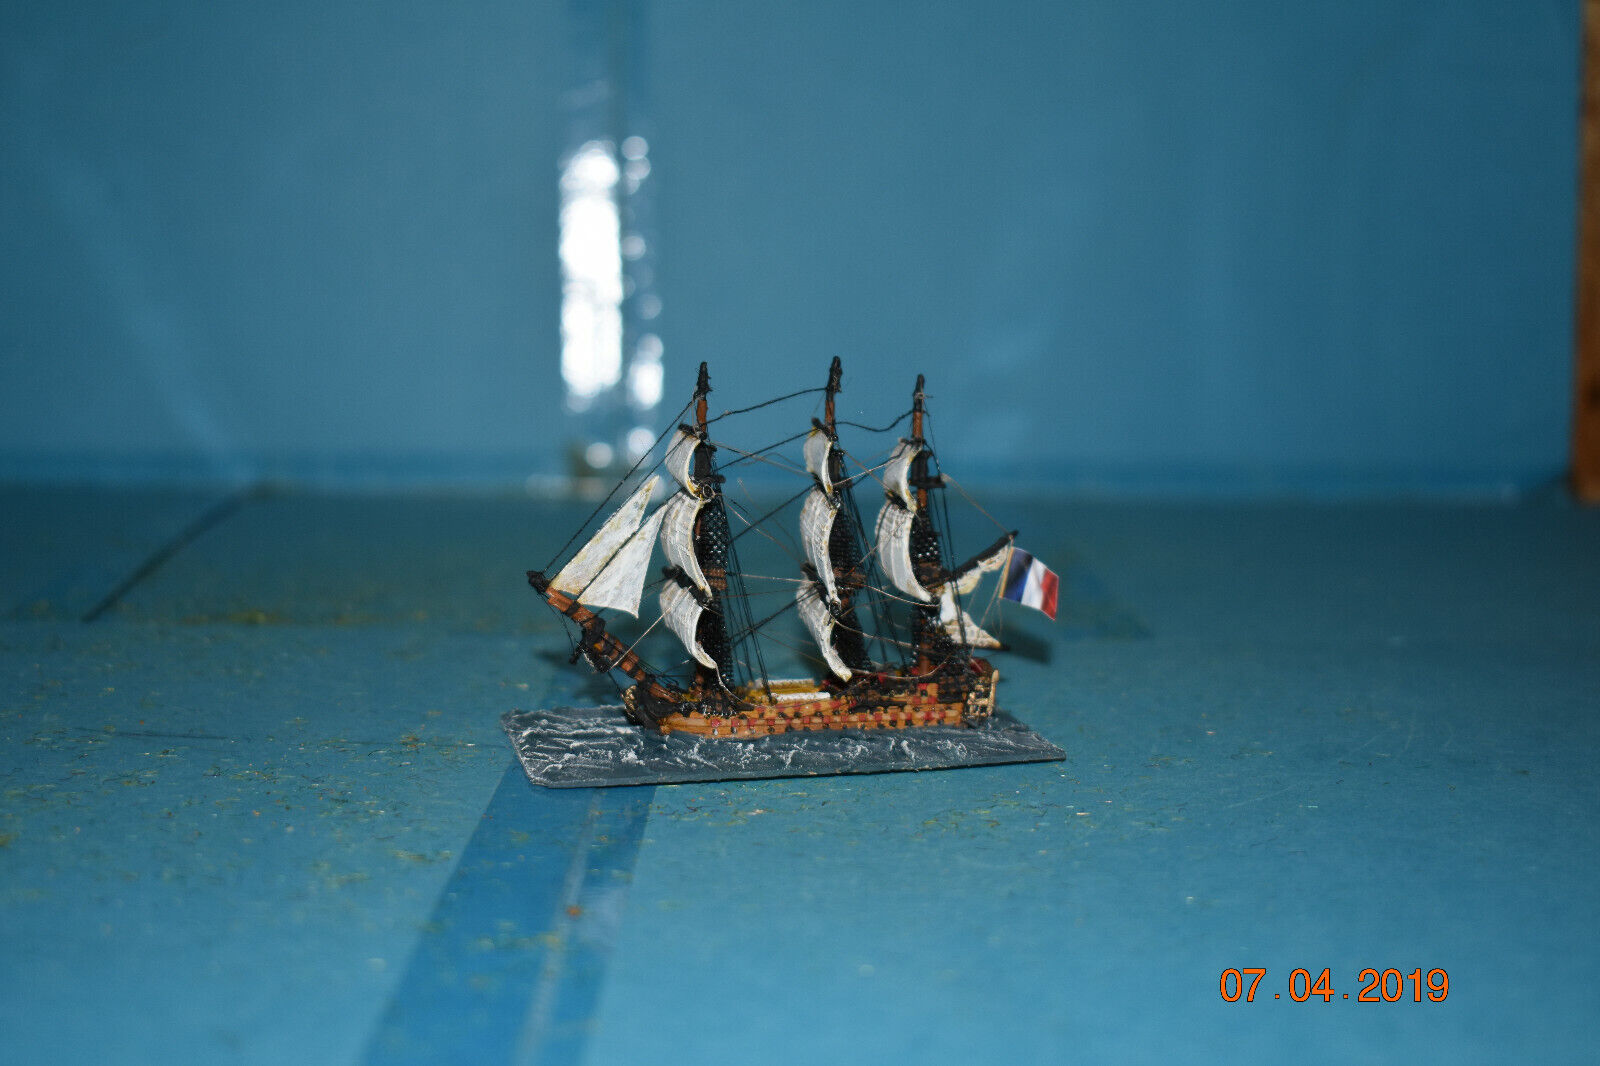 1200th scale napoleonic ships French 74 gun line